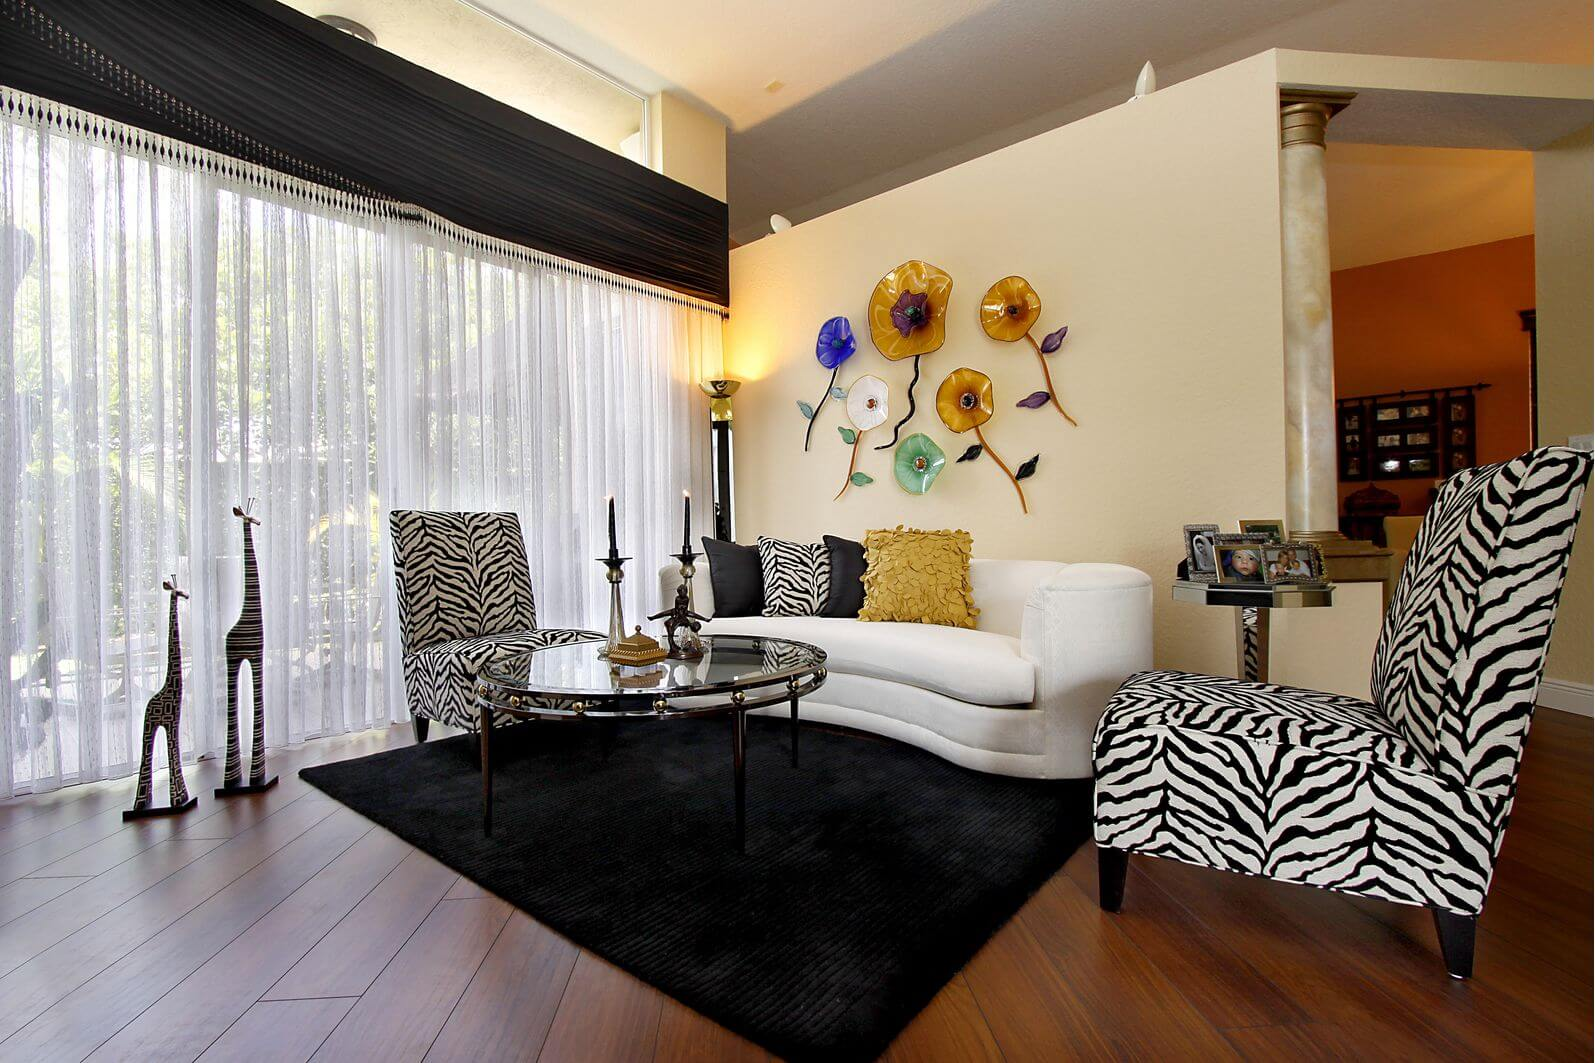 17 Zebra Living Room Decor Ideas (pictures. Placement Of Rugs In Living Room. Living Room Farrow And Ball. Front Living Room. Foot Rests For Living Room. Inspiring Living Rooms. Designs For A Small Living Room. Tv Set Design Living Room. Console Tables For Living Room